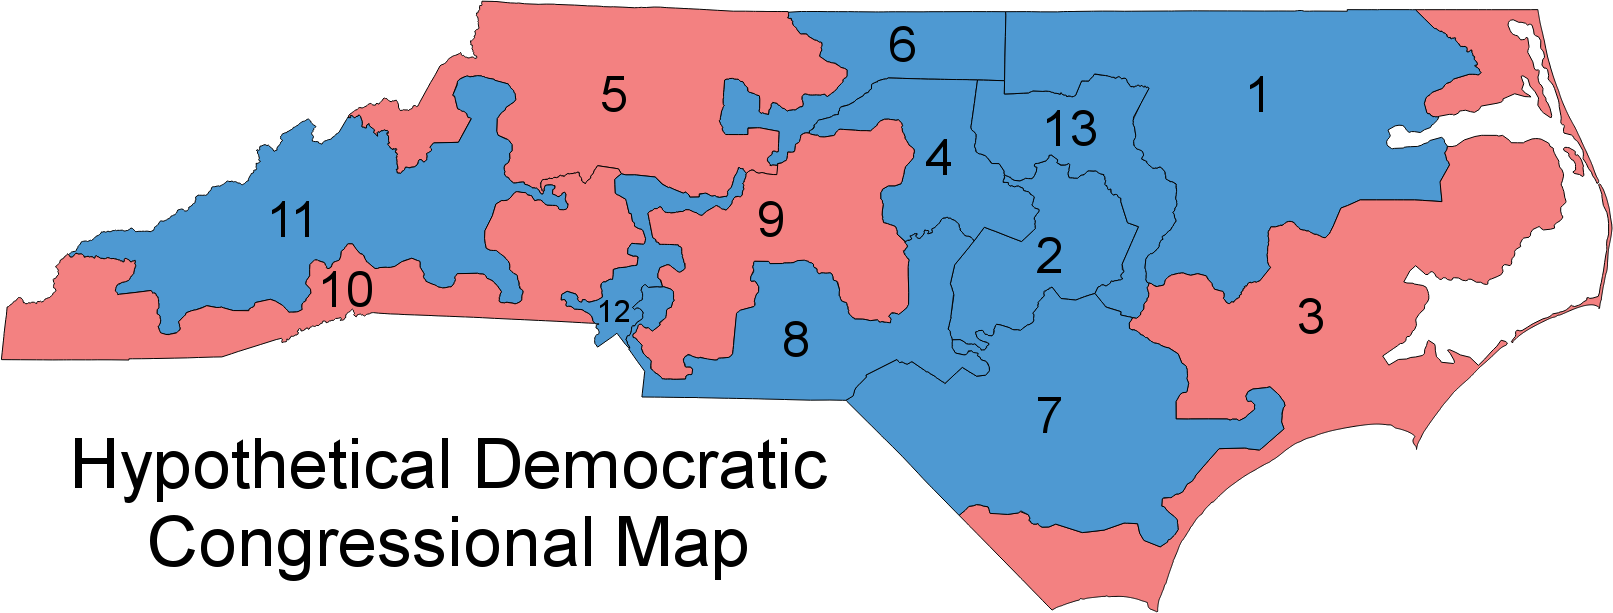 These three maps show just how effectively gerrymandering can